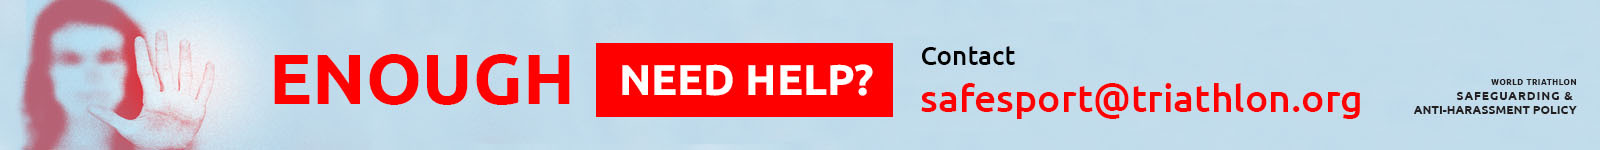 Need help? Contact safesport@triathlon.org